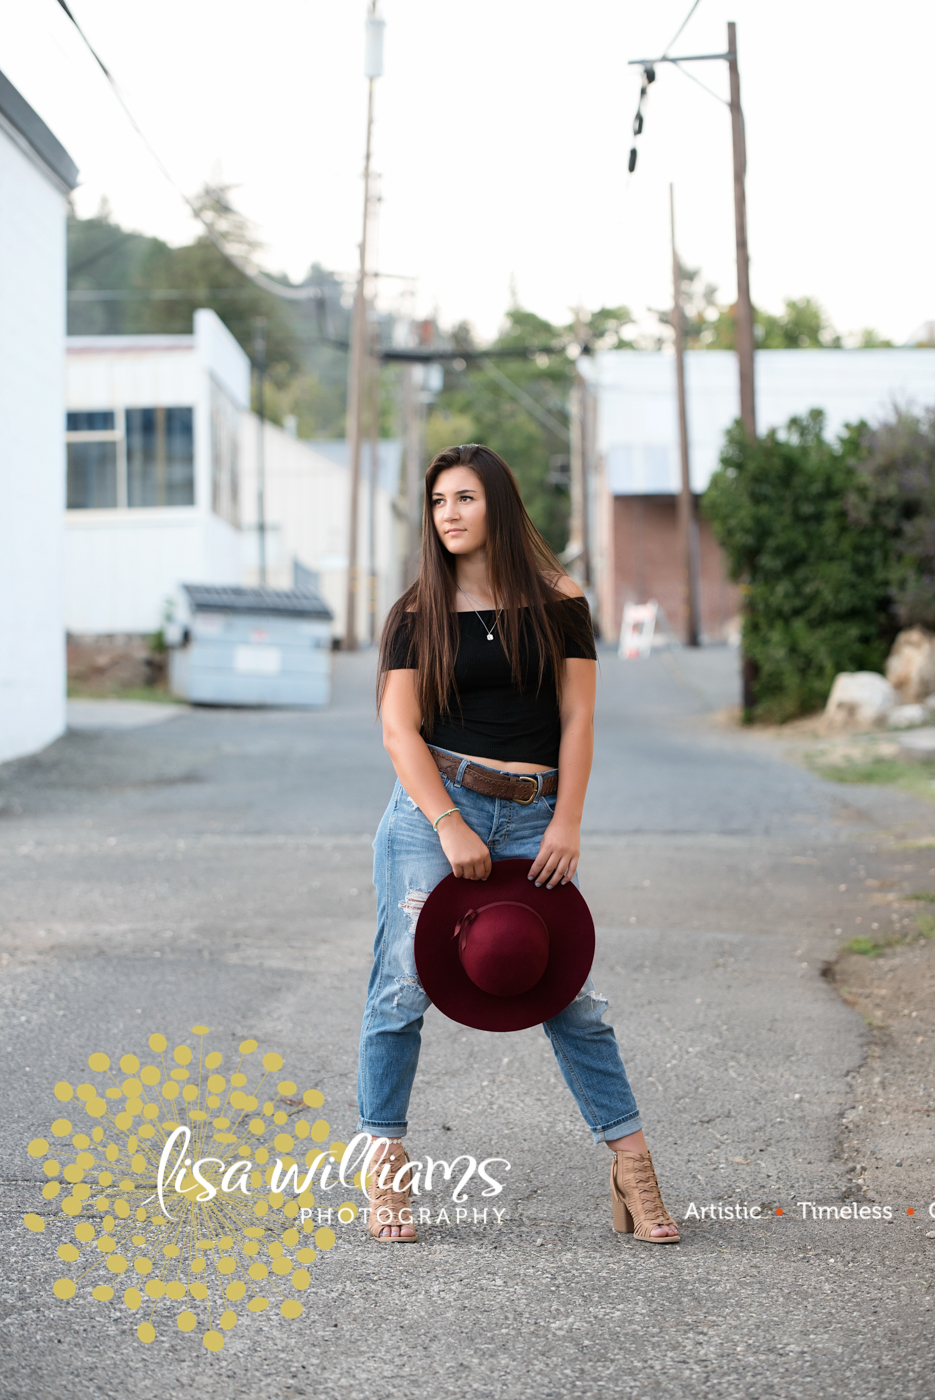 Lisa Williams photography – grass valley portrait photographer- senior portrait photographer- northern California senior portraits- Nevada county senior portraits – Colfax Senior Portraits – Rocklin Senior Portraits- Roseville Senior Portraits – t-7.jpg